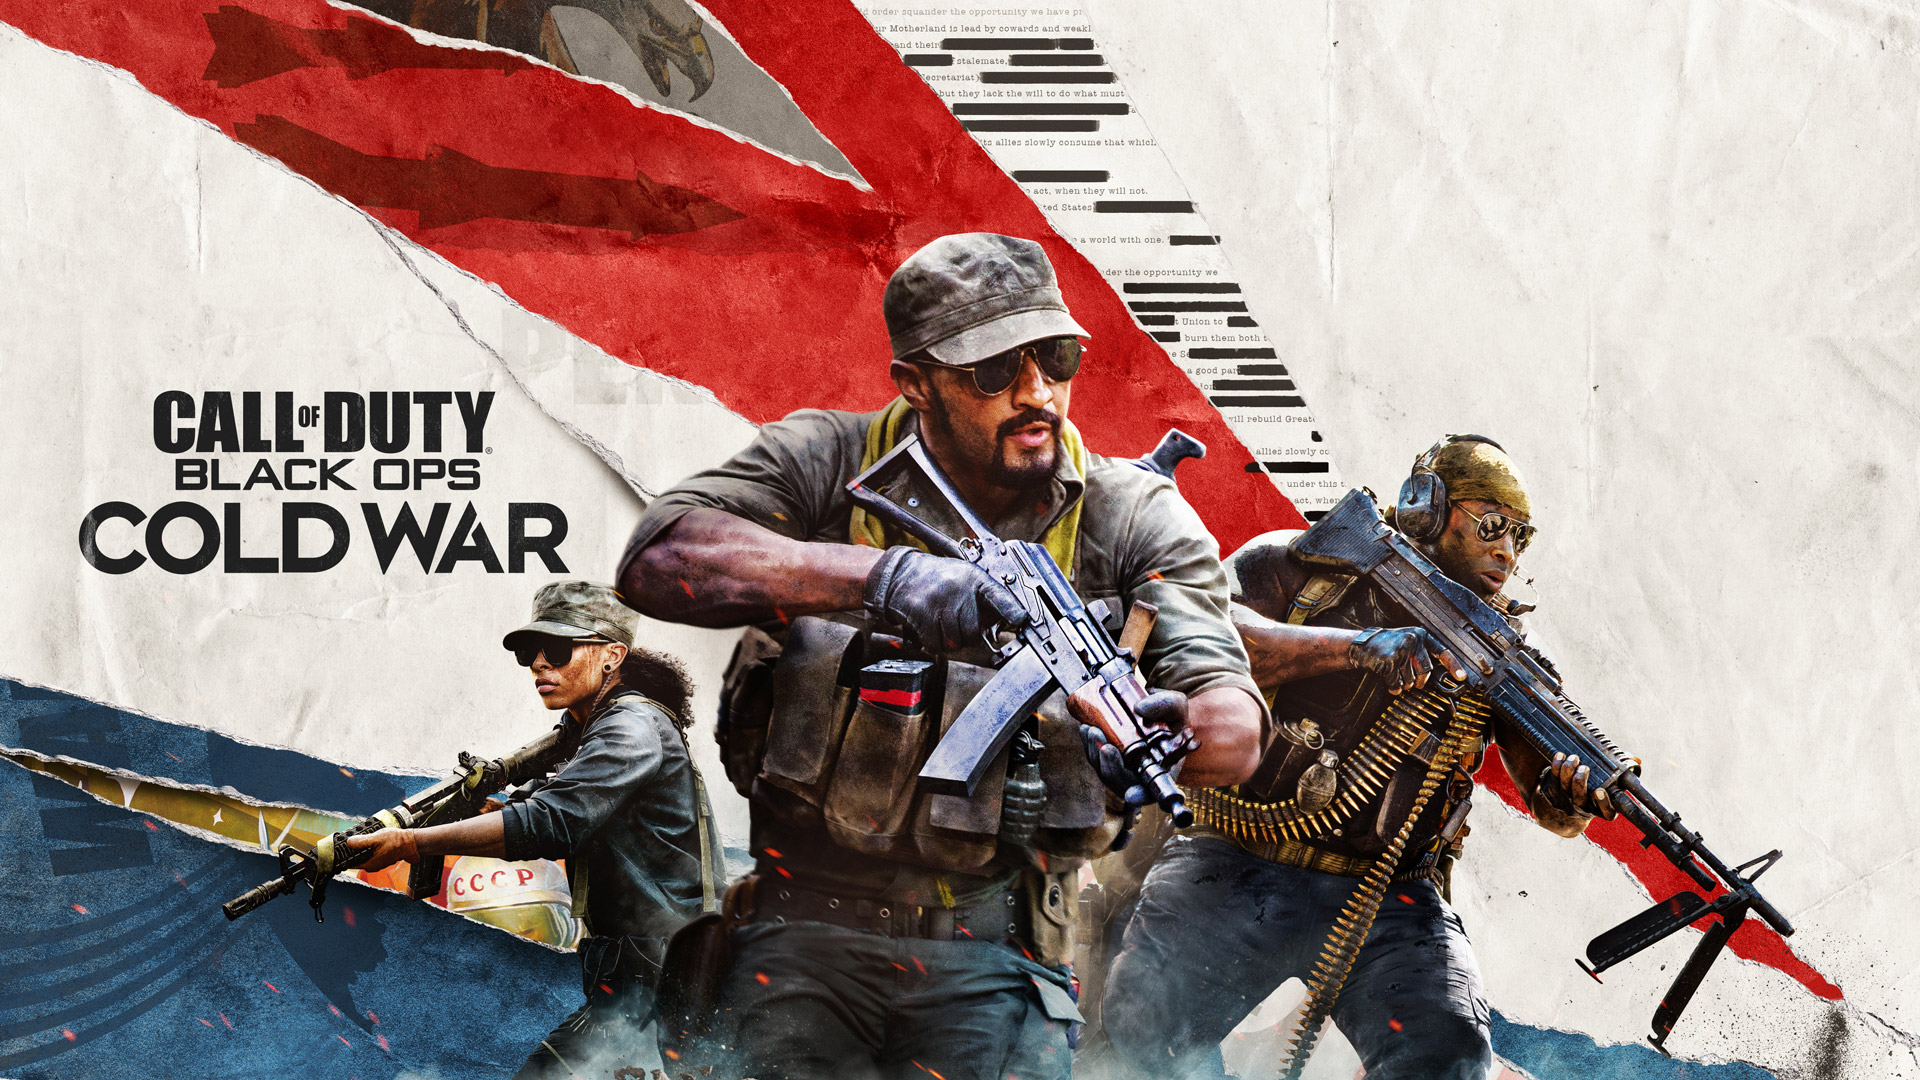 Call of Duty: Black Ops Cold War Wallpaper in 1920x1080